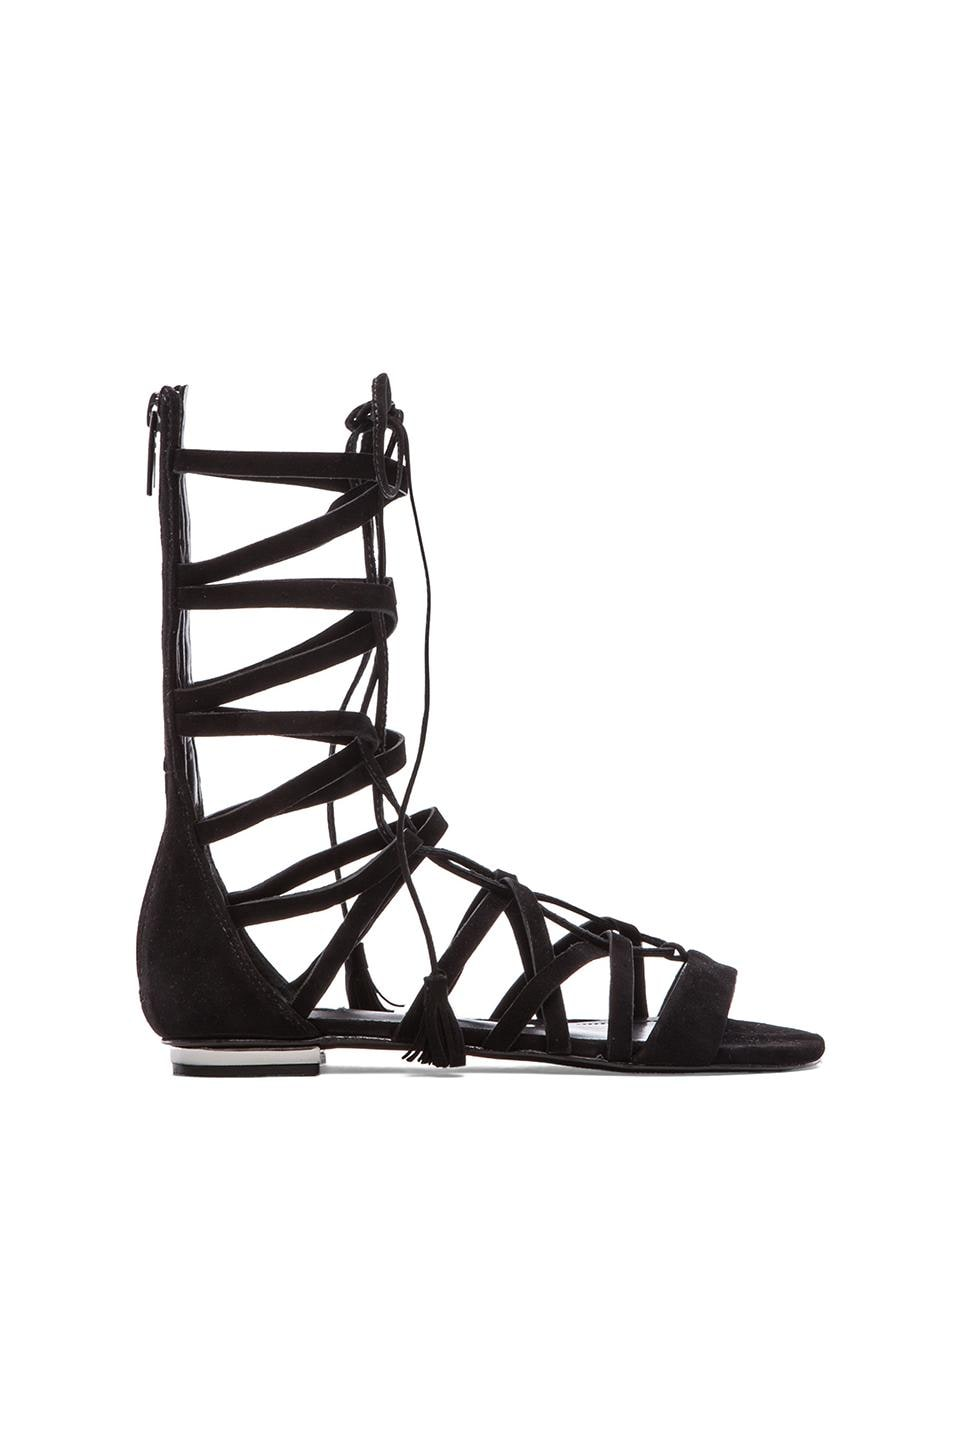 Schutz Billa Sandal in Black